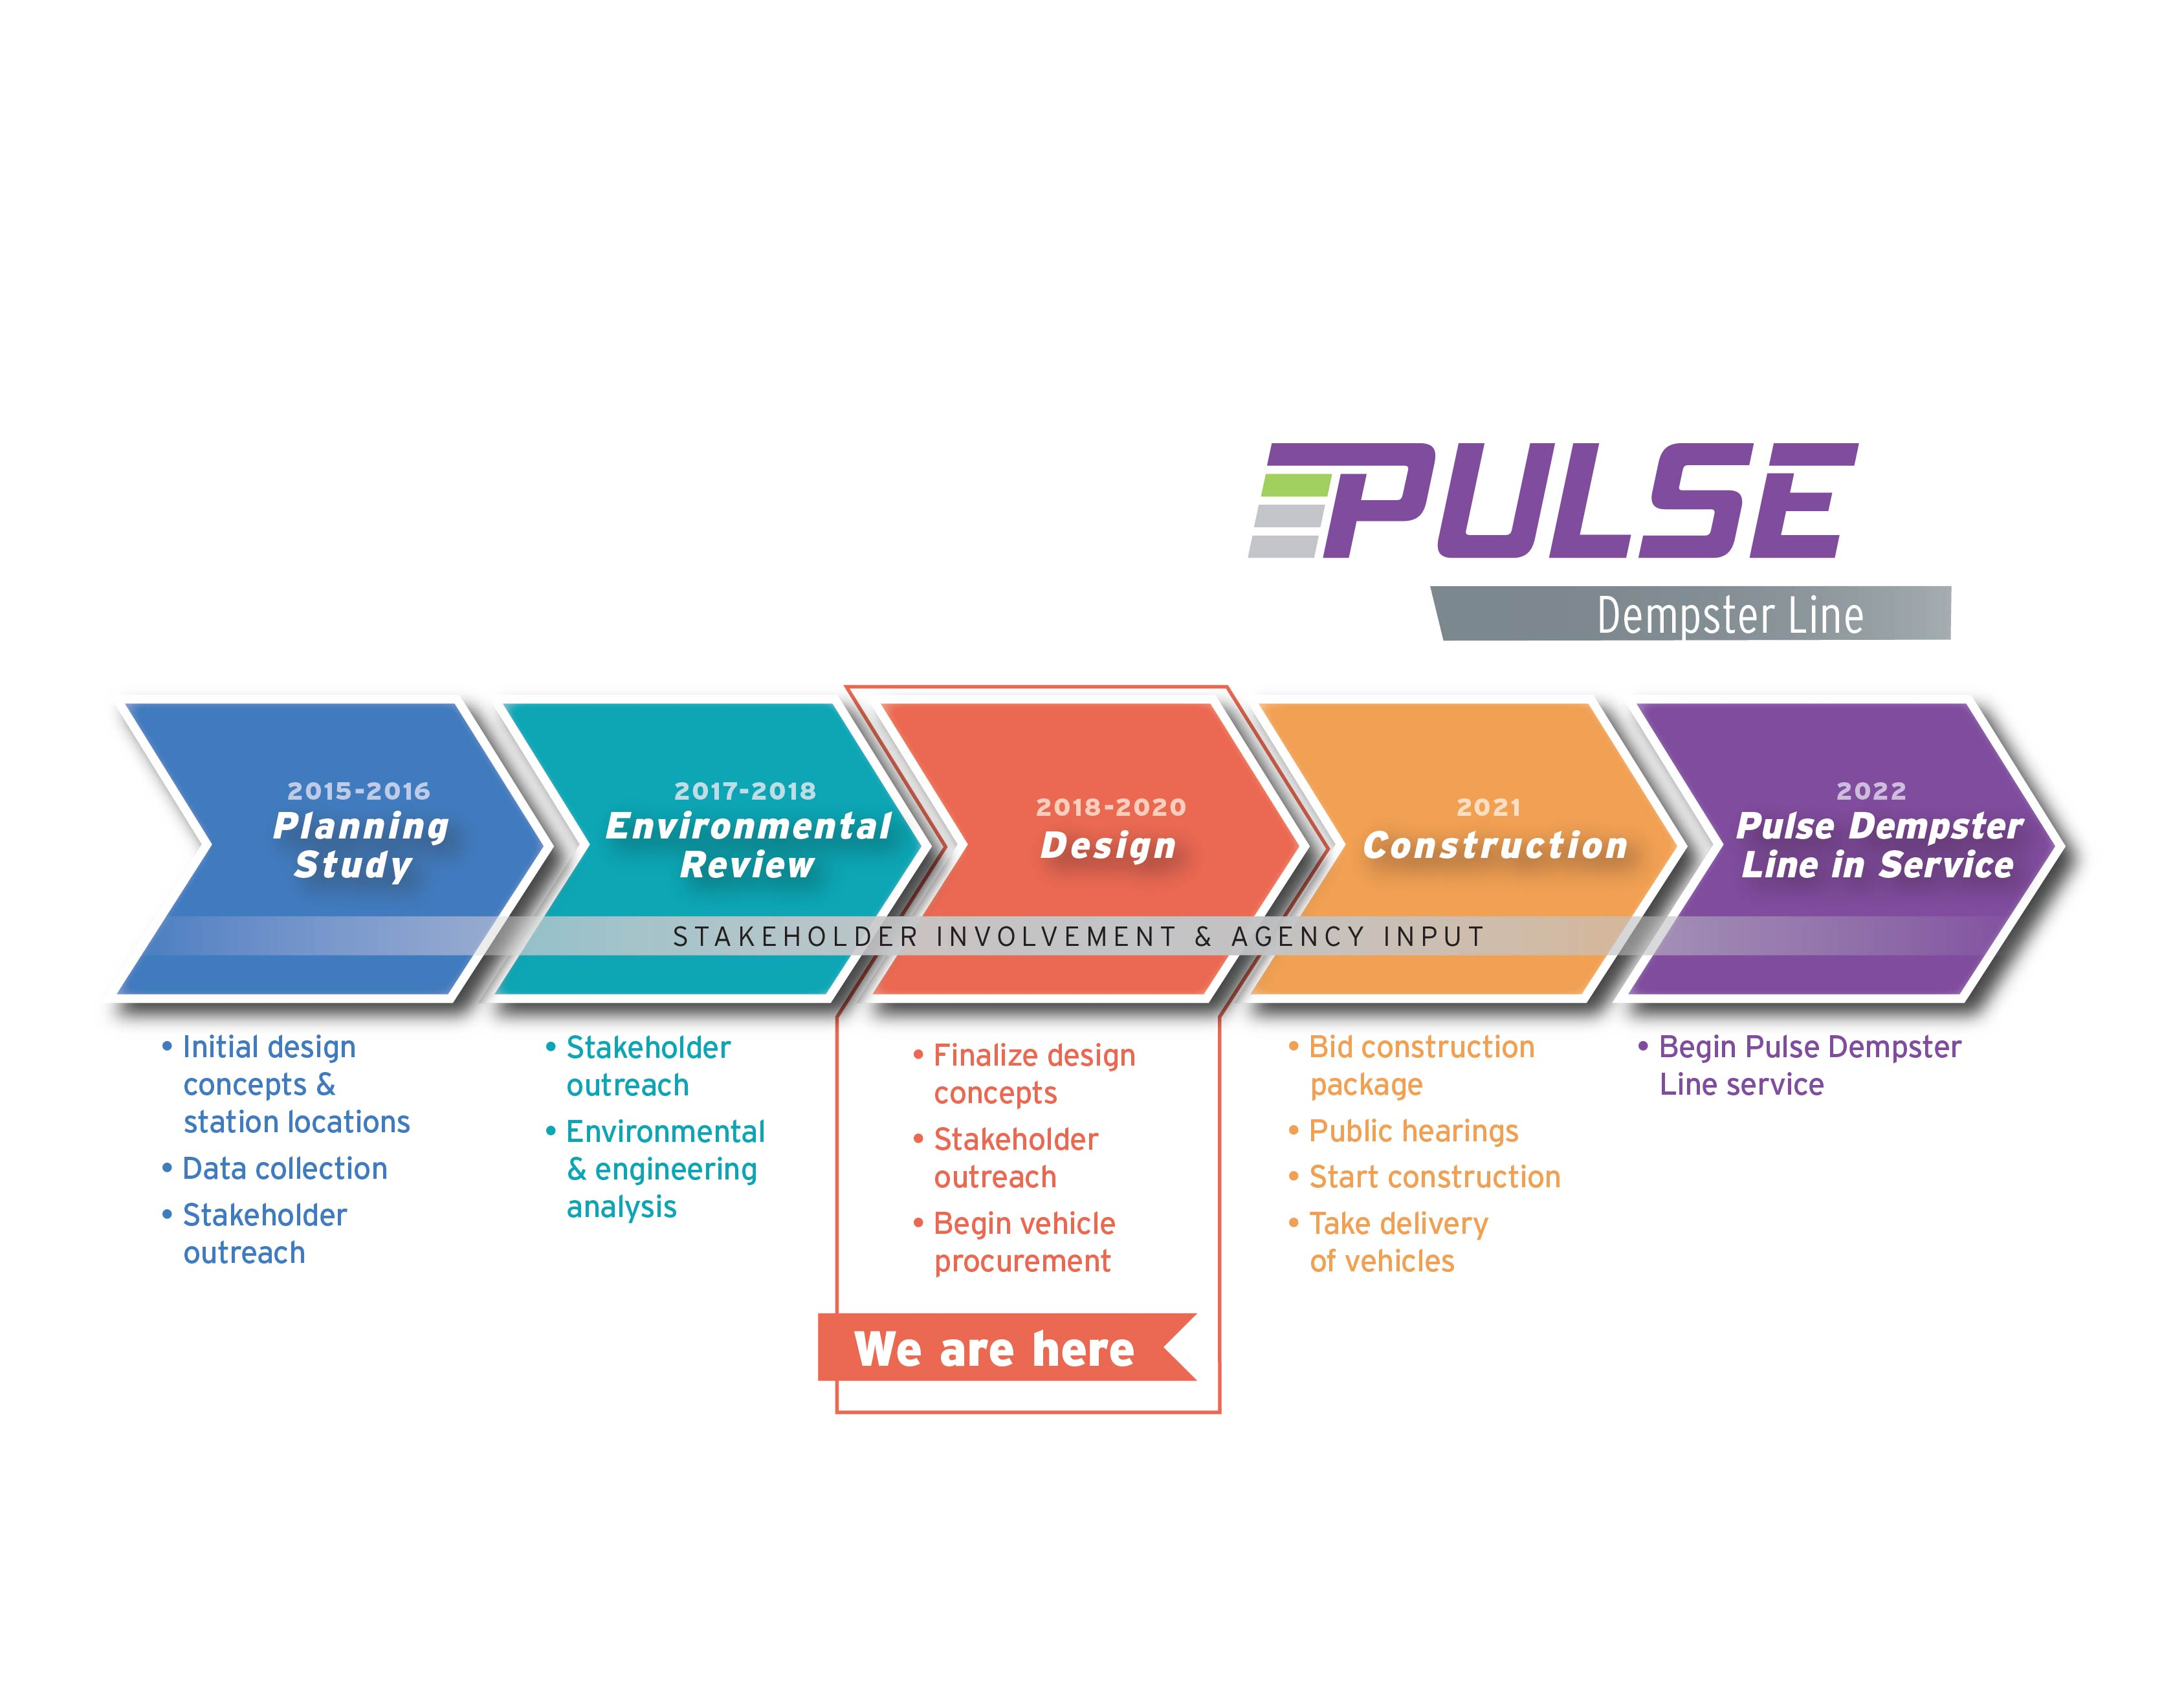 Image of the Pulse Dempster Timeline